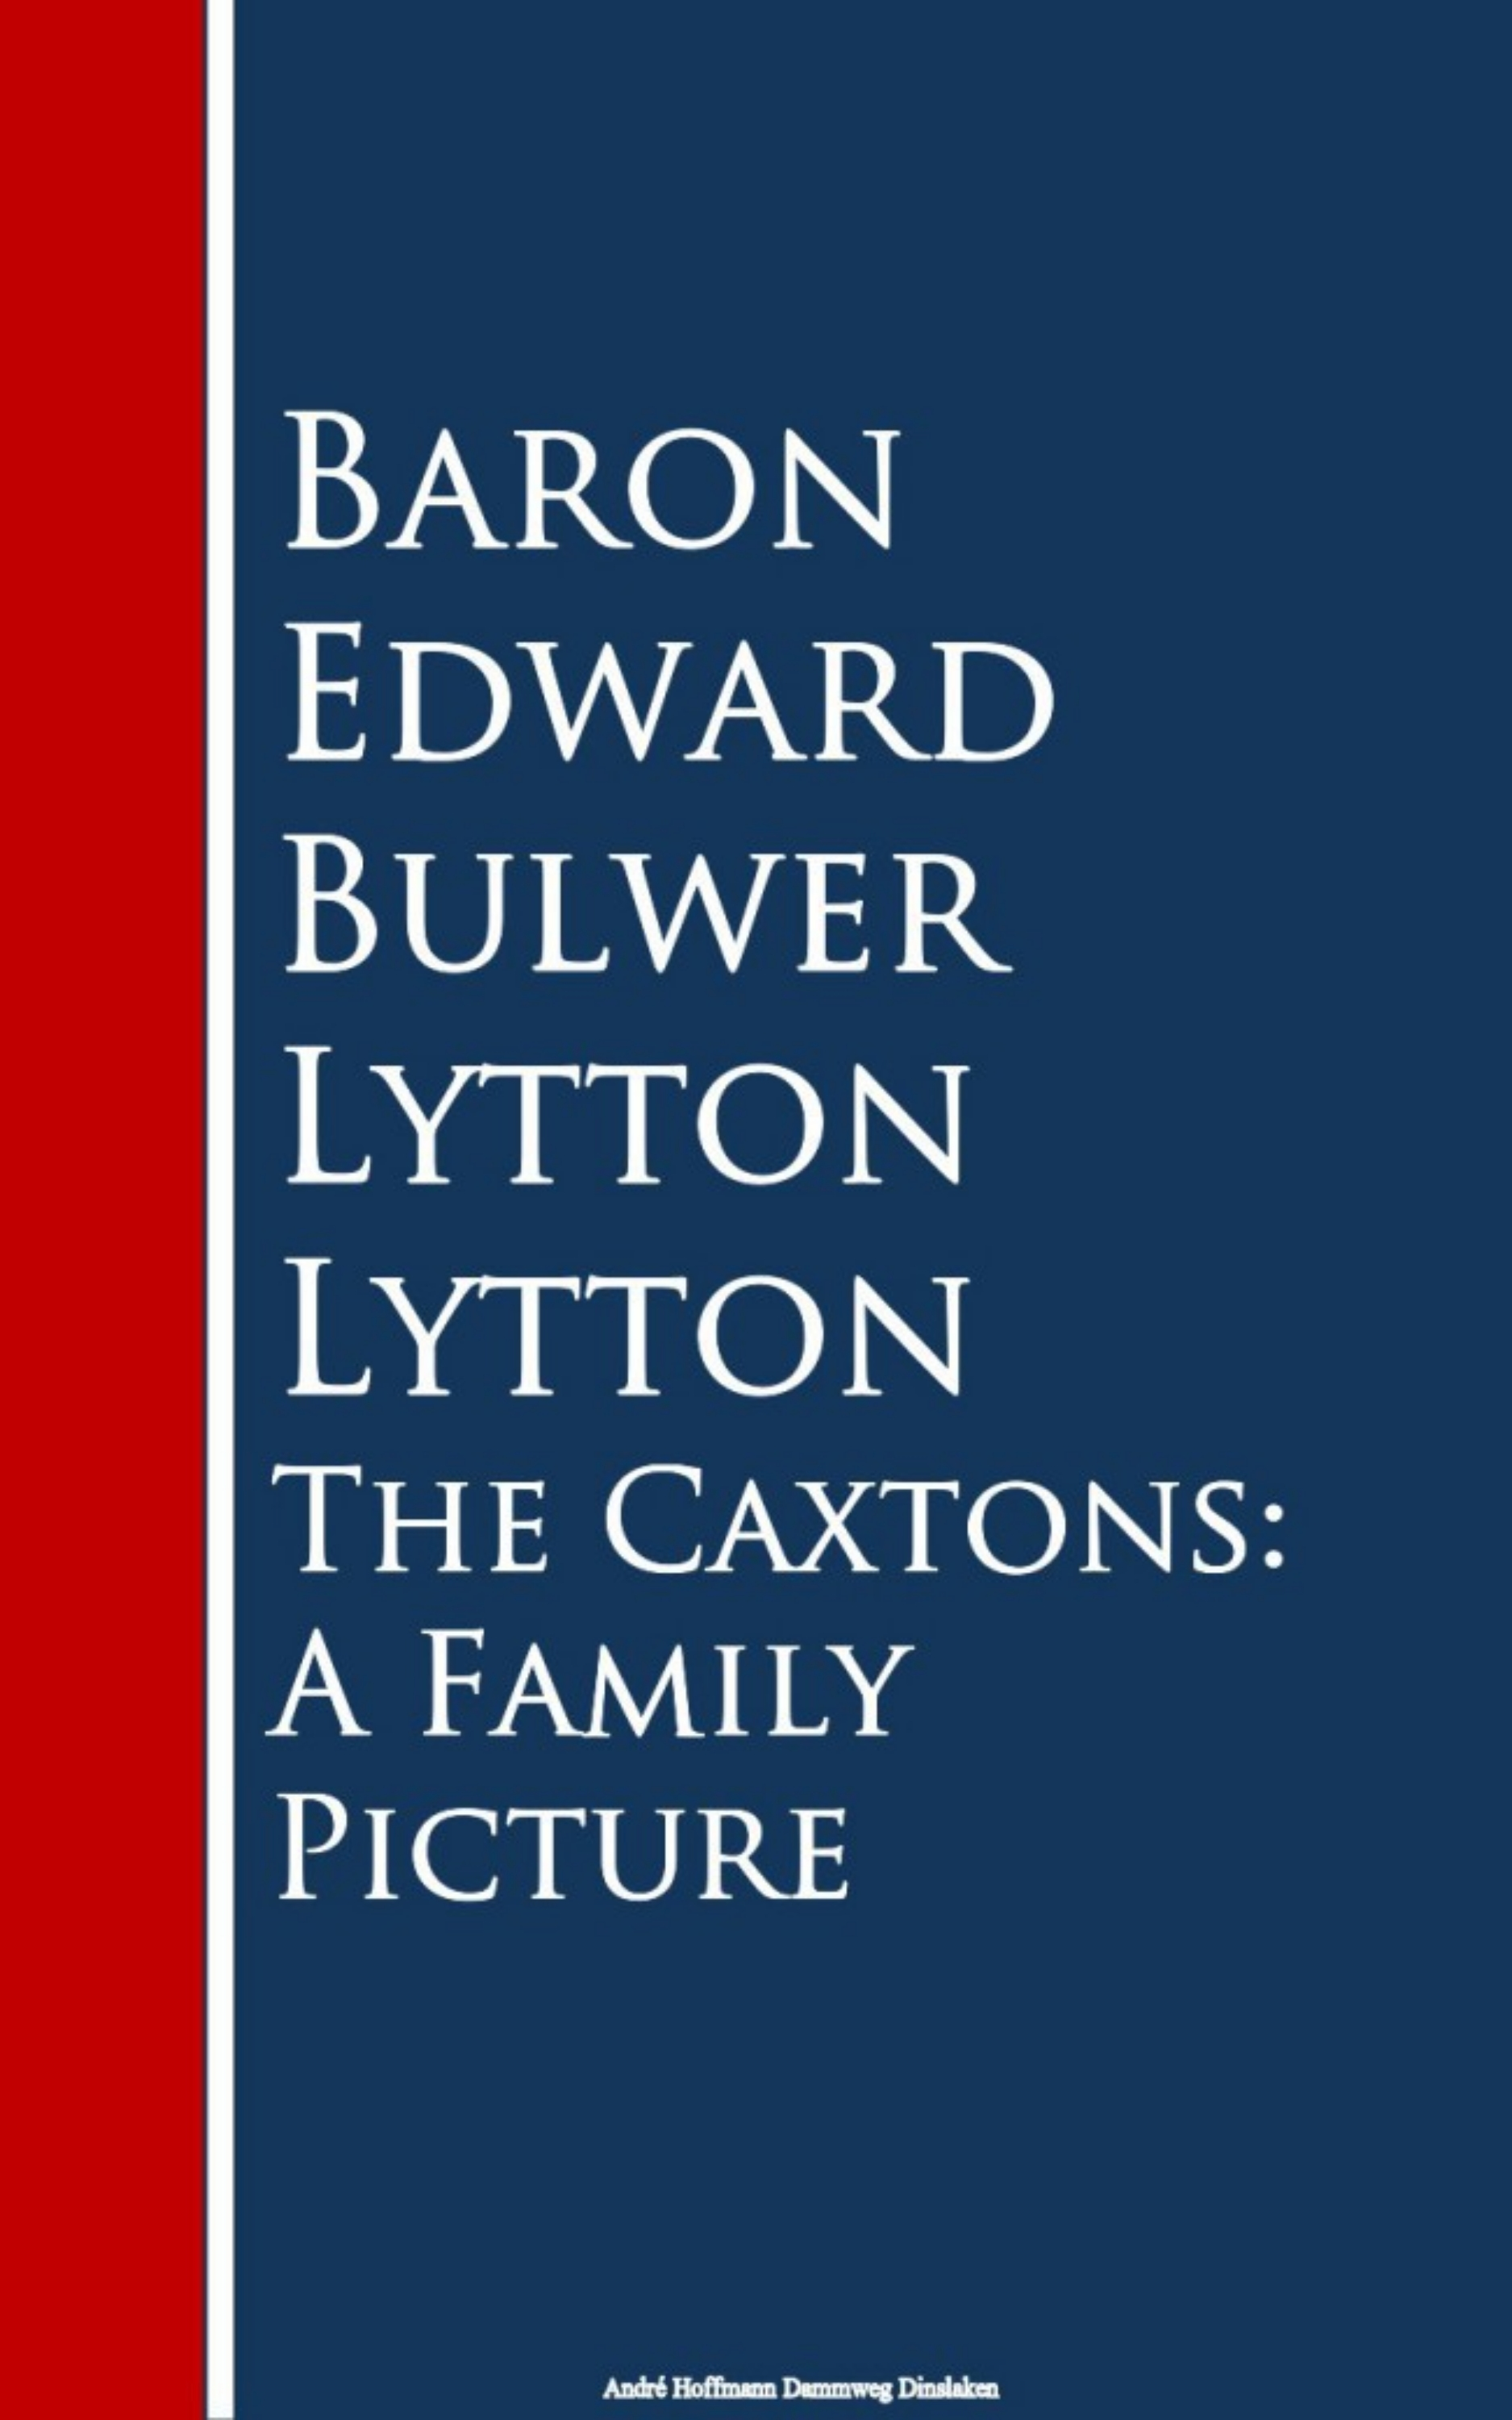 Baron Edward Bulwer Lytton The Caxtons: A Family Picture sarah mallory a regency baron s bride to catch a husband the wicked baron